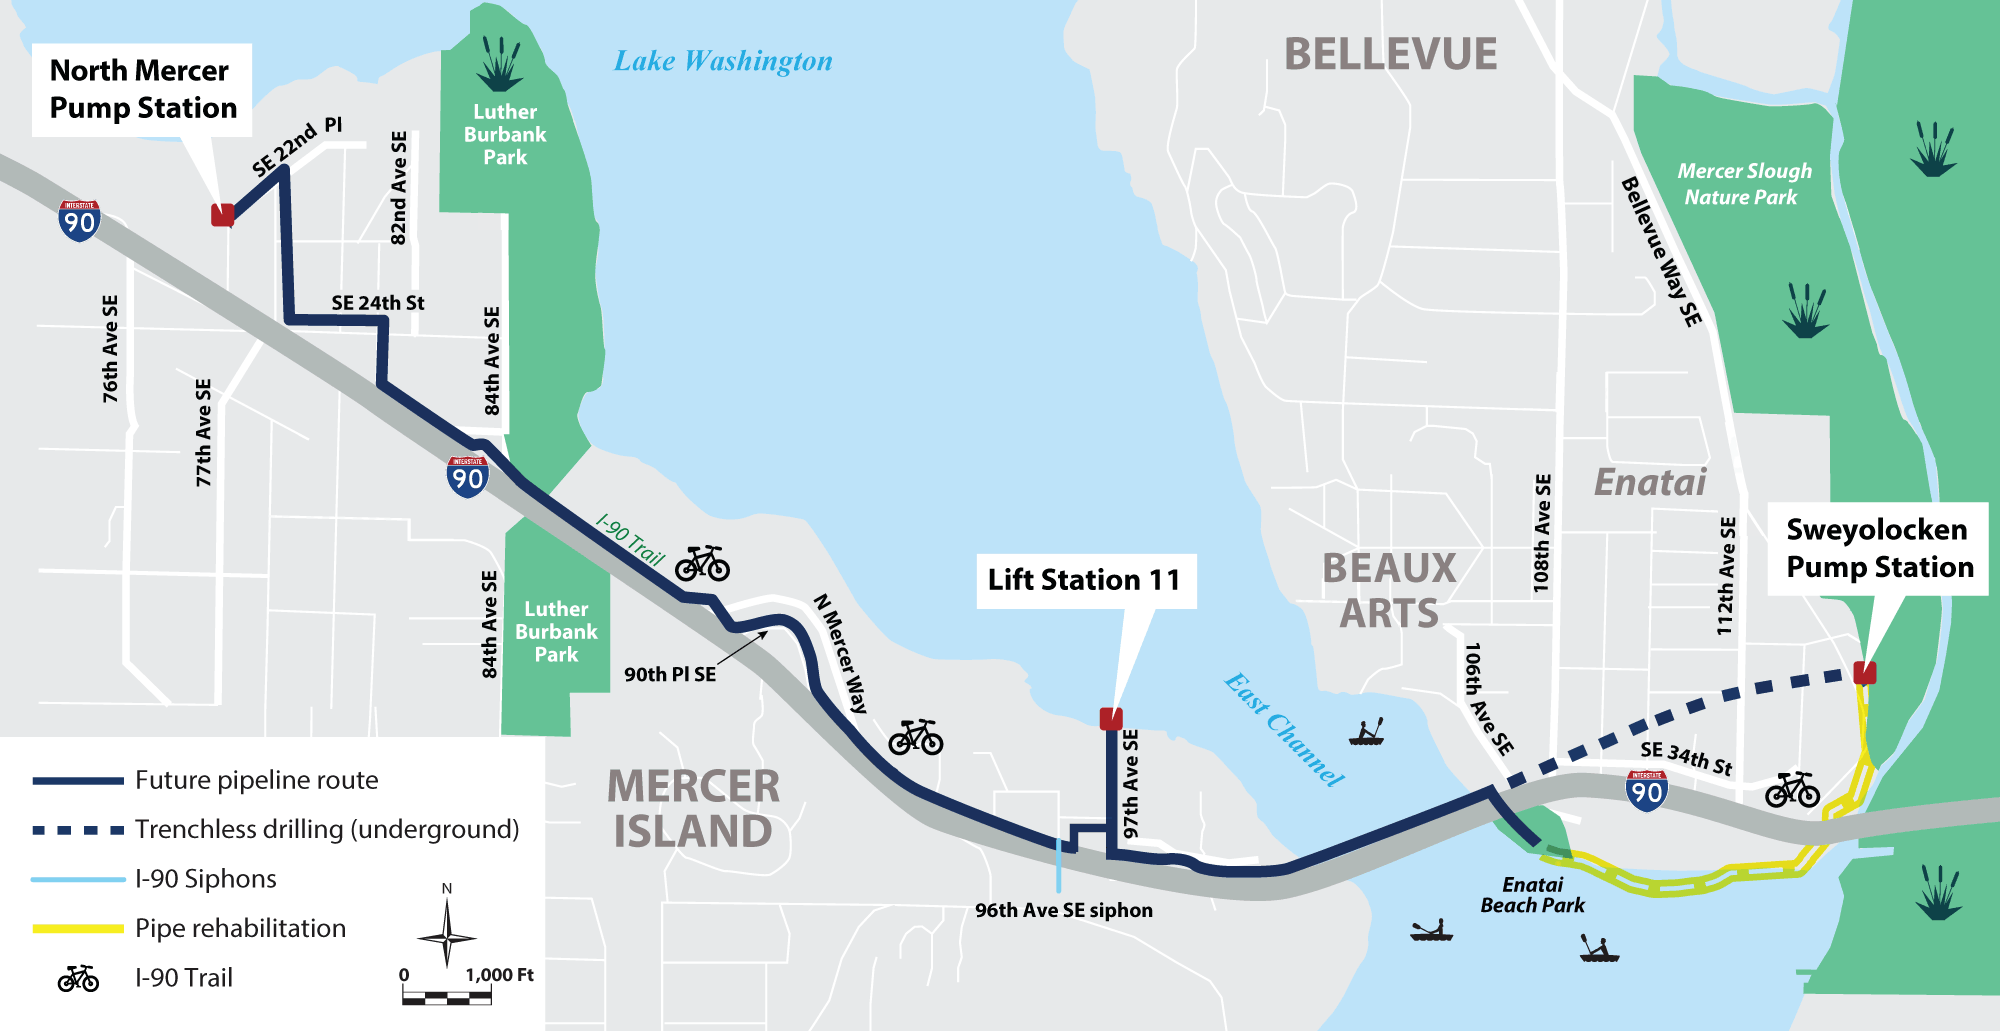 map of the construction area